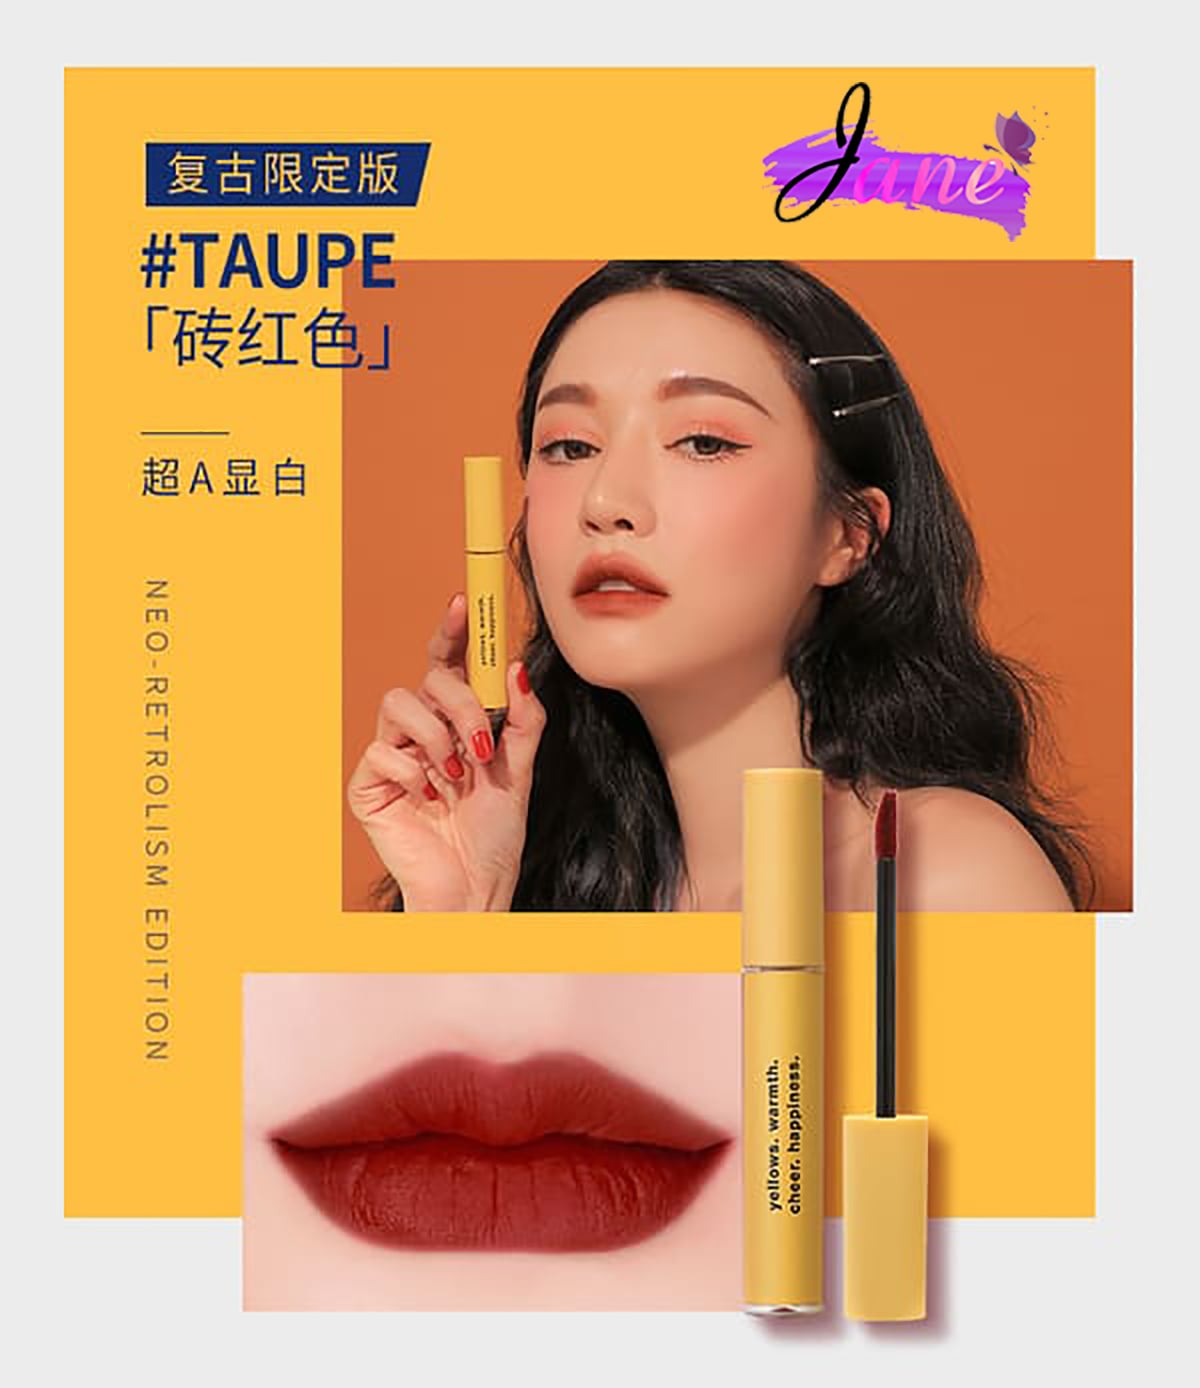 3CE Velvet Lip Tint Retrolism Limited Shades Taupe